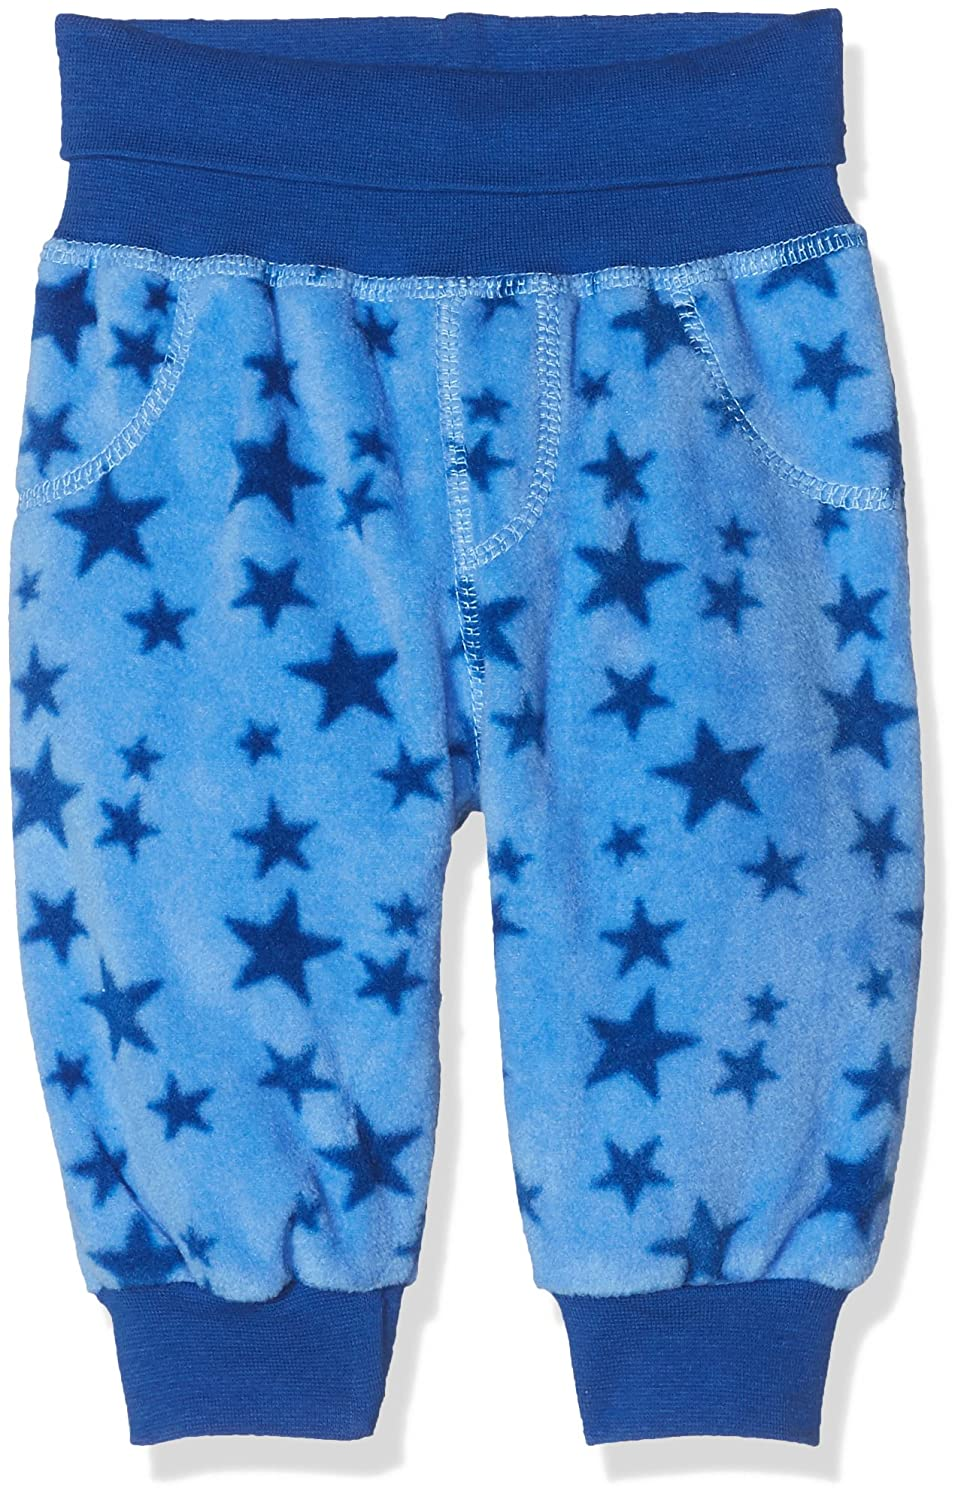 Schnizler Baby Fleece Pumphose Trousers Playshoes 800962